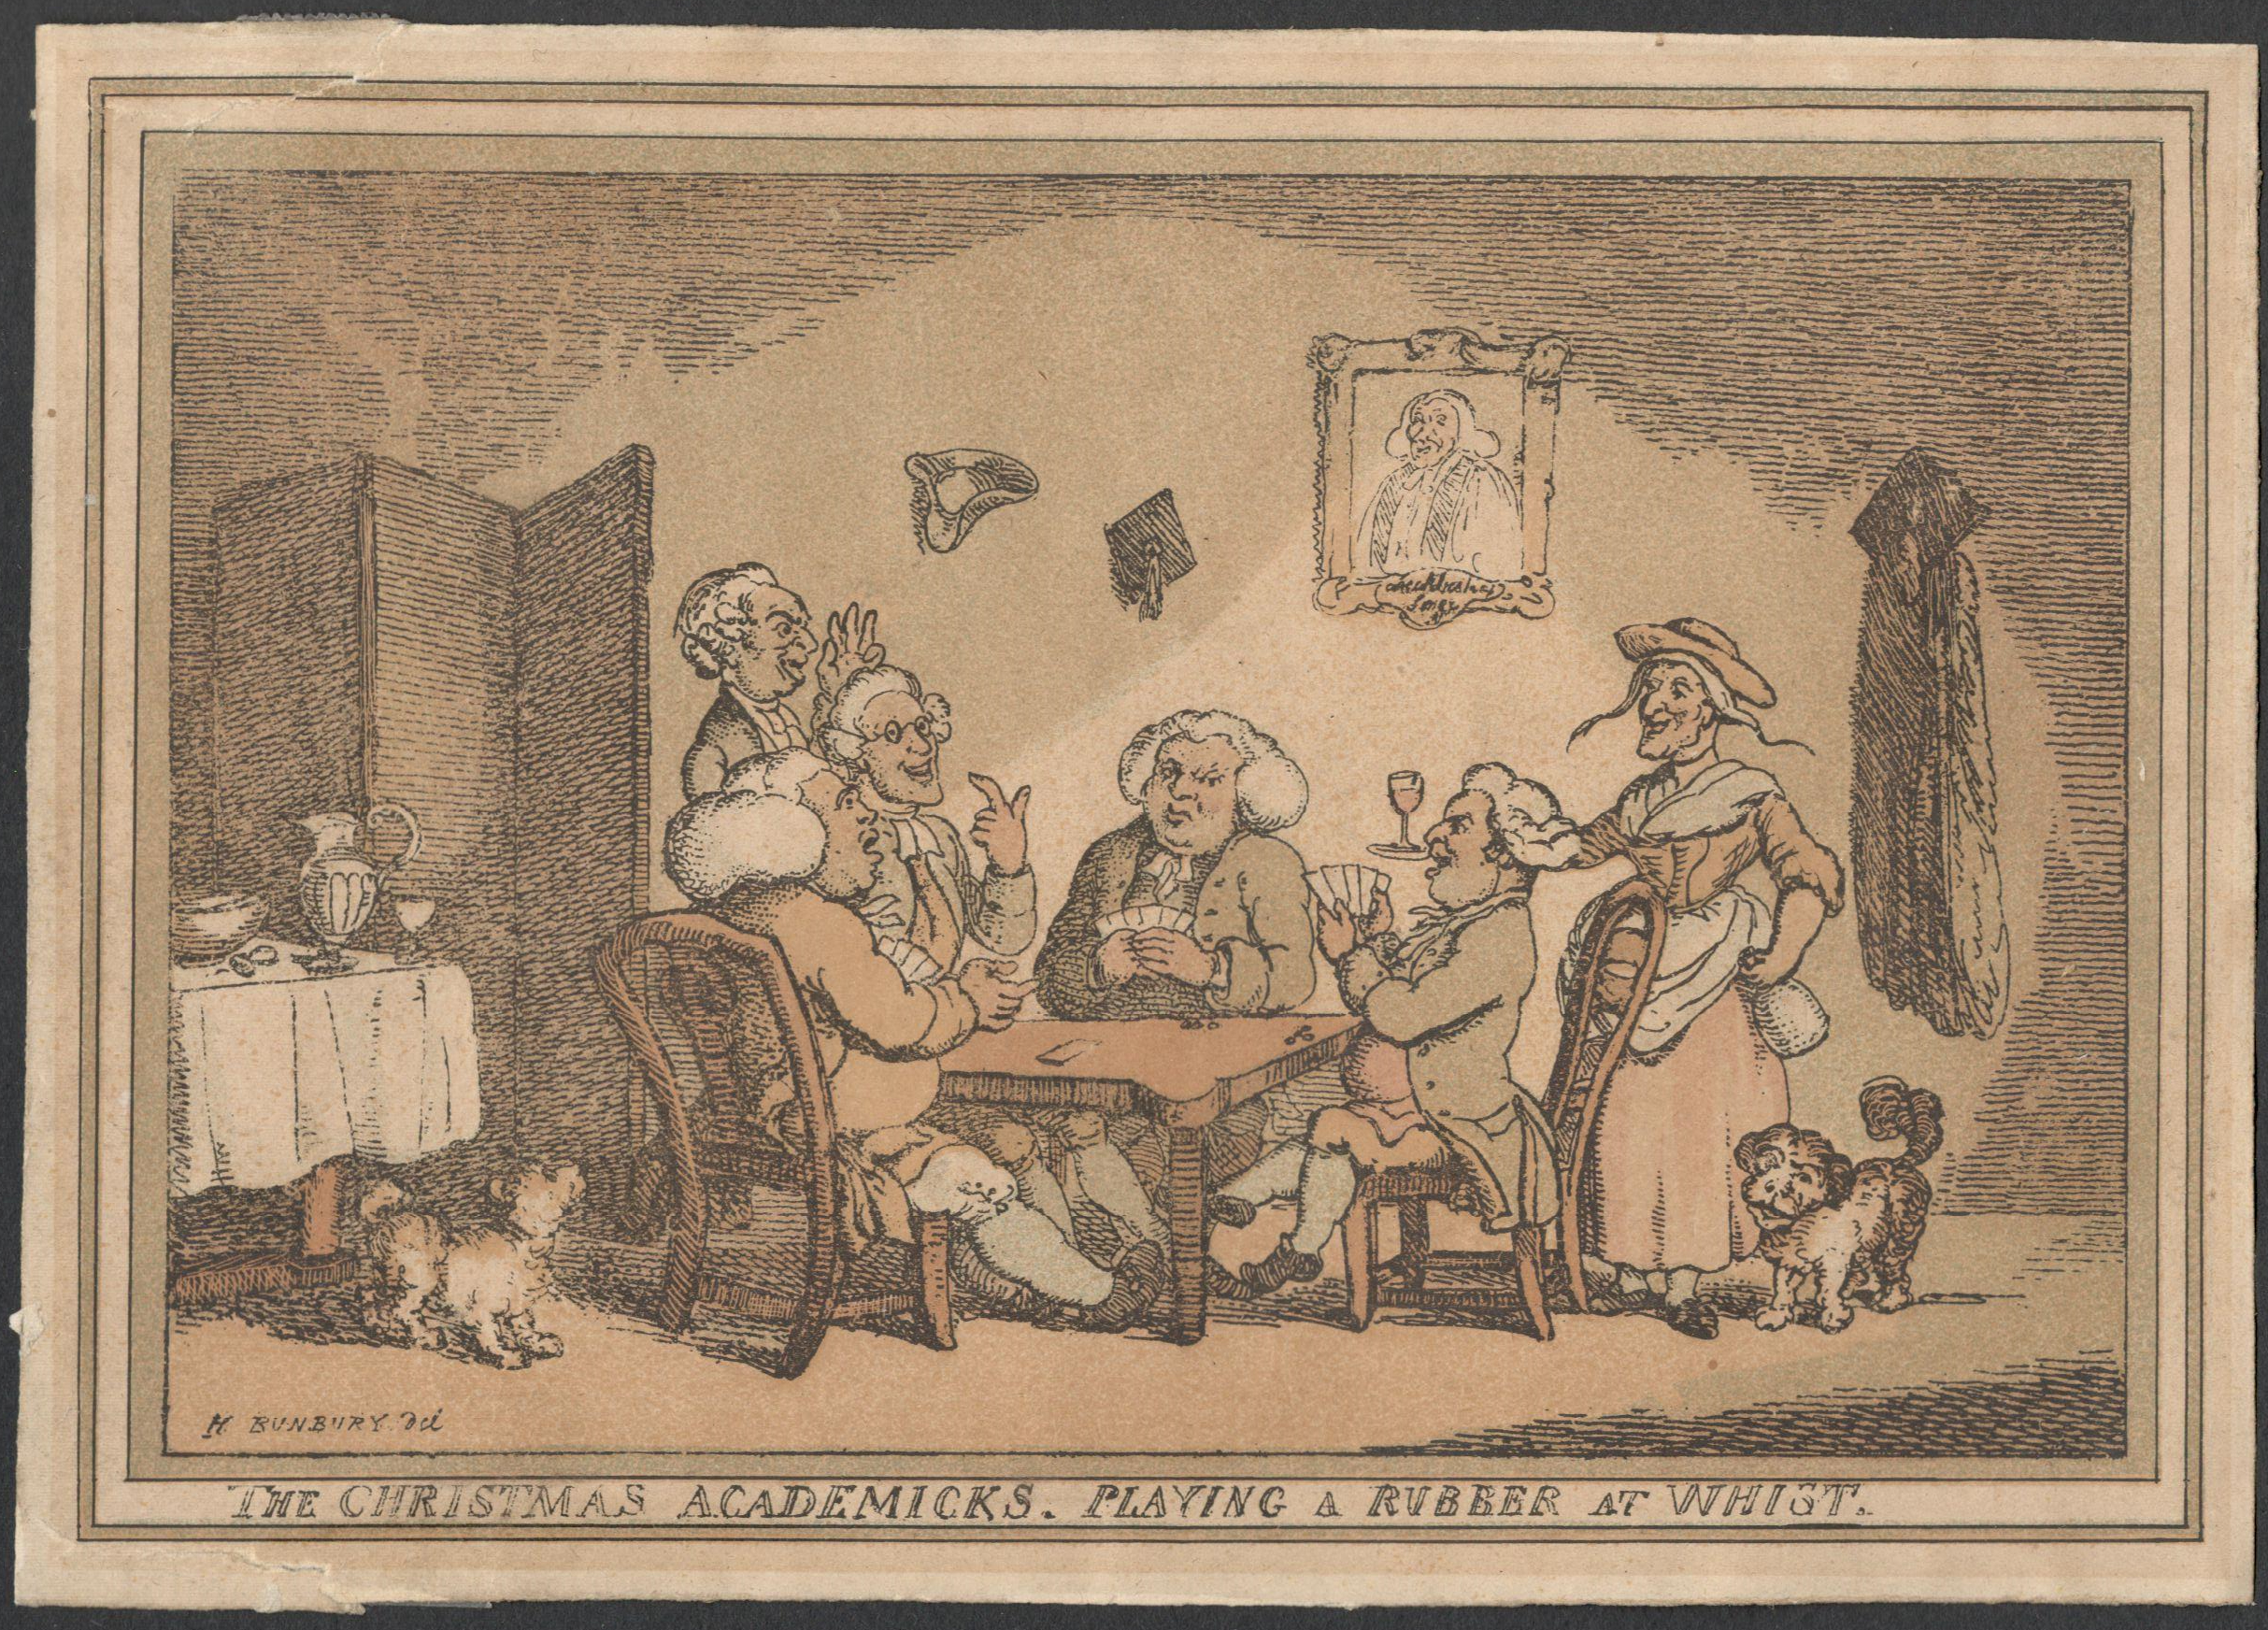 Lot 26 - THE CHRISTMAS ACADEMICKS PLAYING A RUBBER AT WHIST. A COLOURED ETCHING H.W.BUNBURY